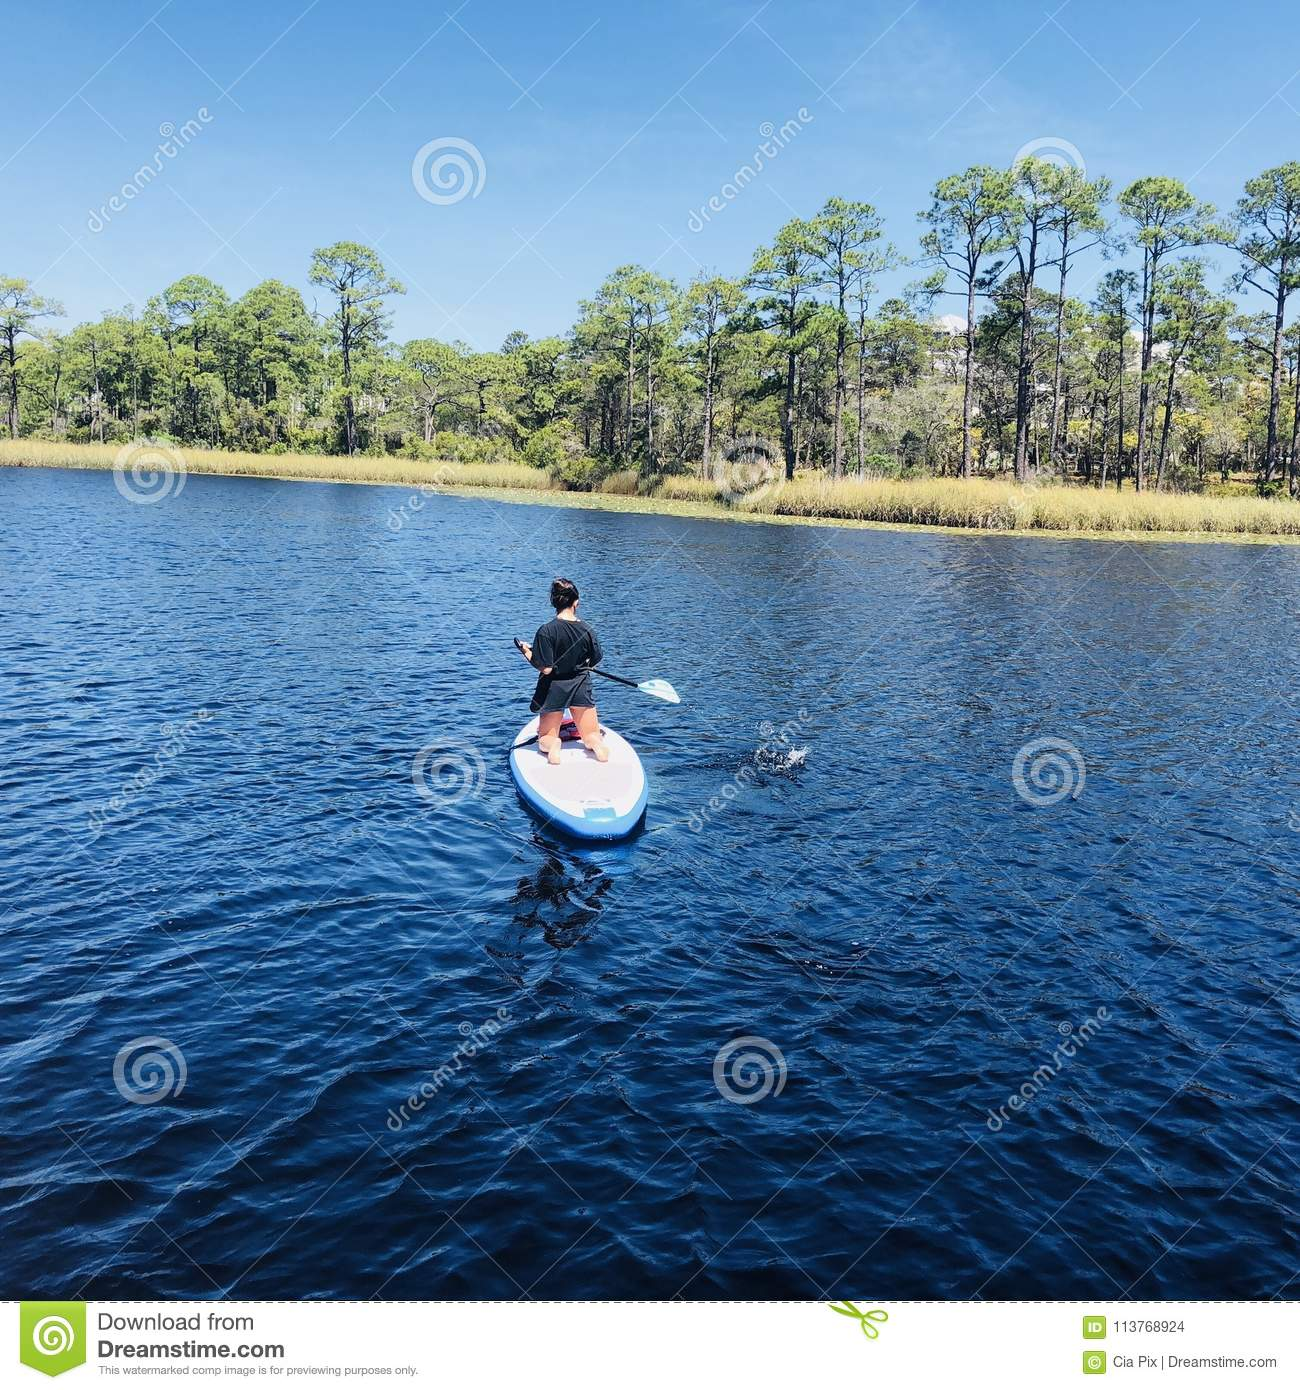 Paddleboarder in Waterverftoevlucht